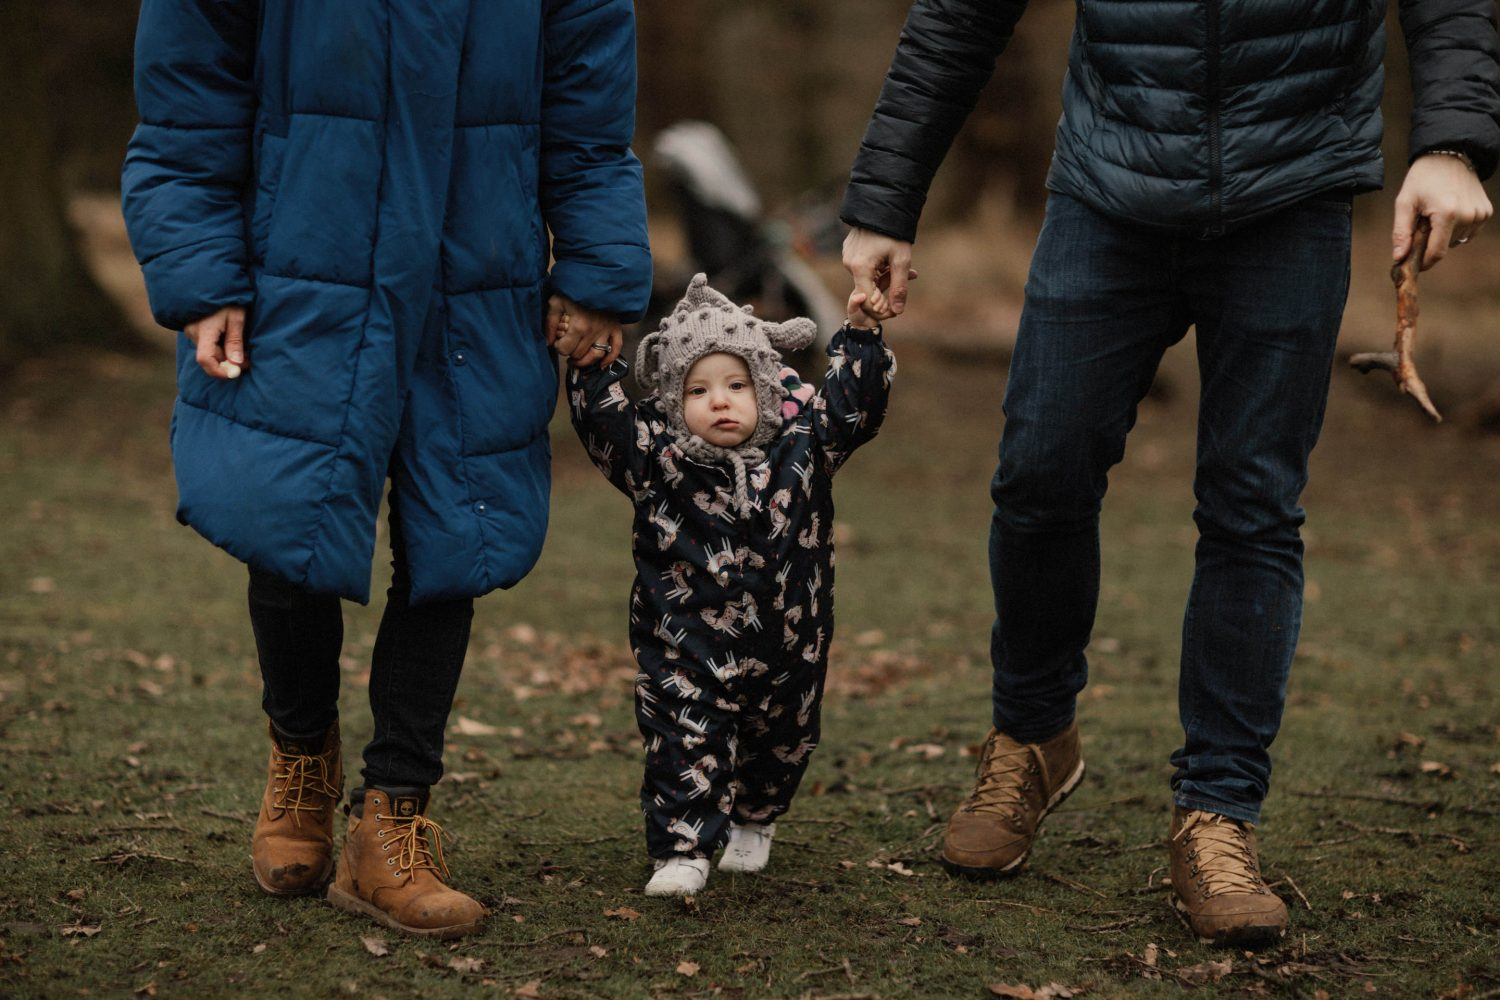 Daughter doing her first steps with her parents holding her hands in Manchester